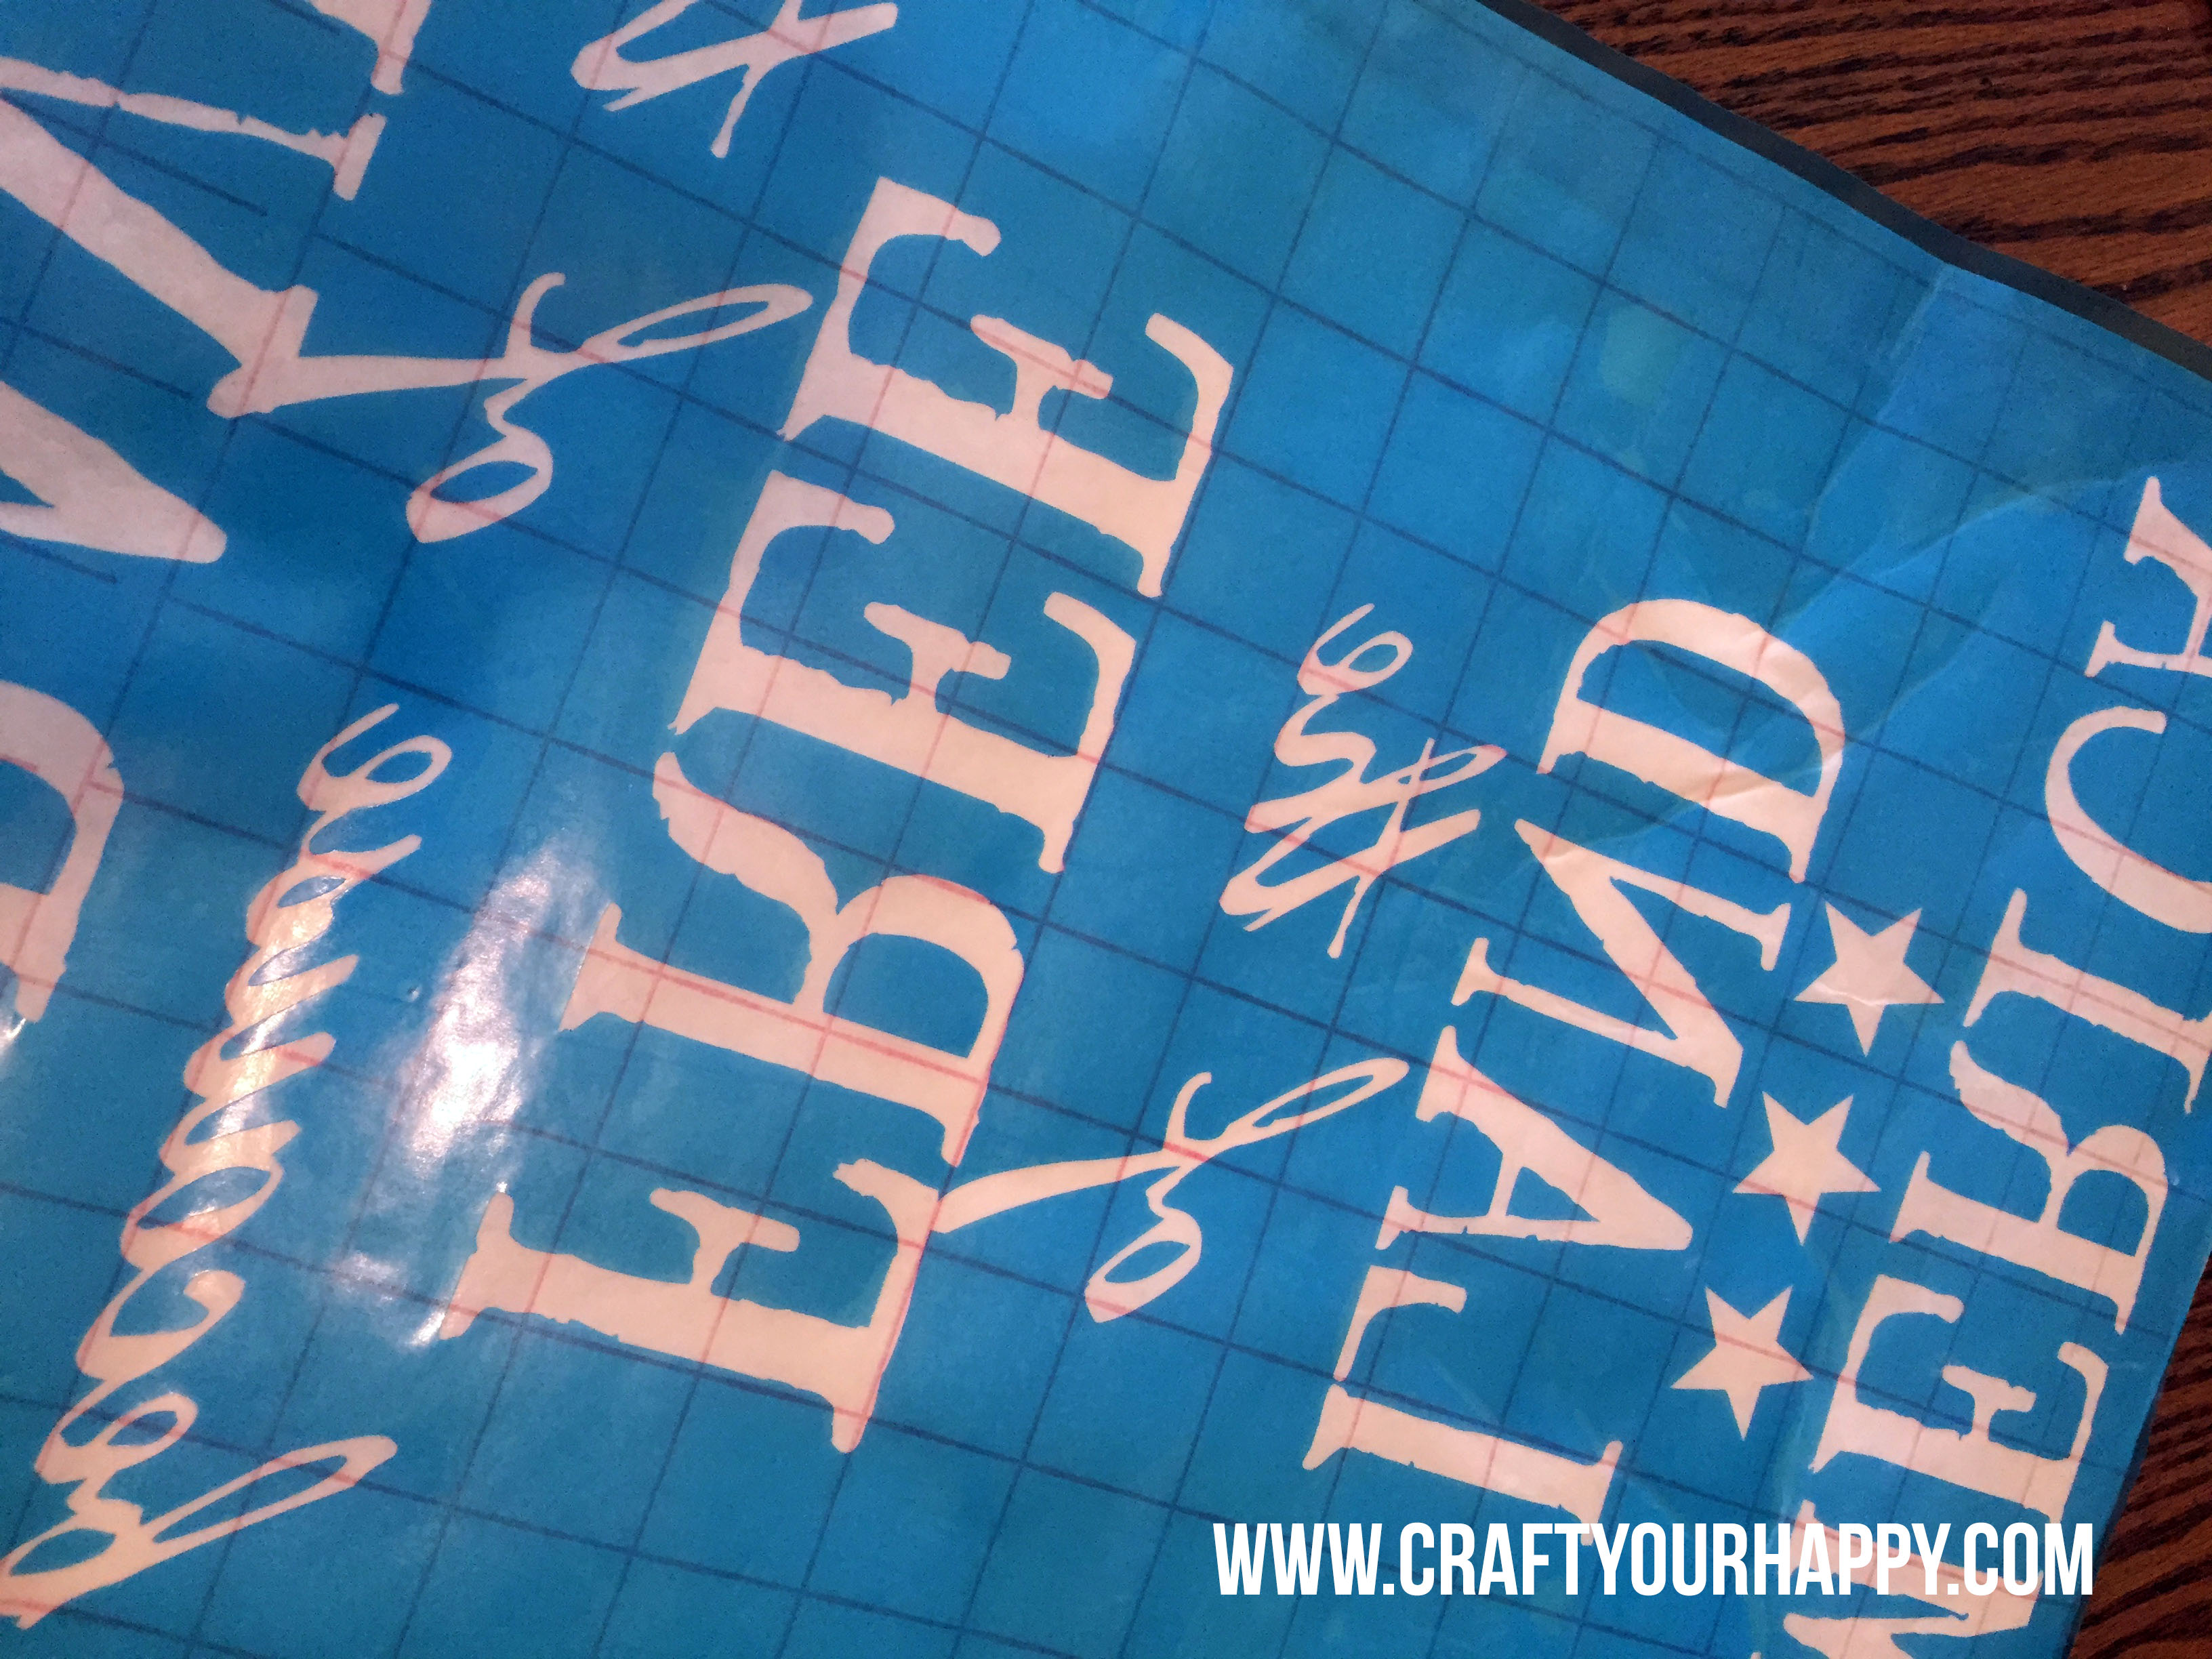 Craft Your Happy -How To Make A Stenciled Sign